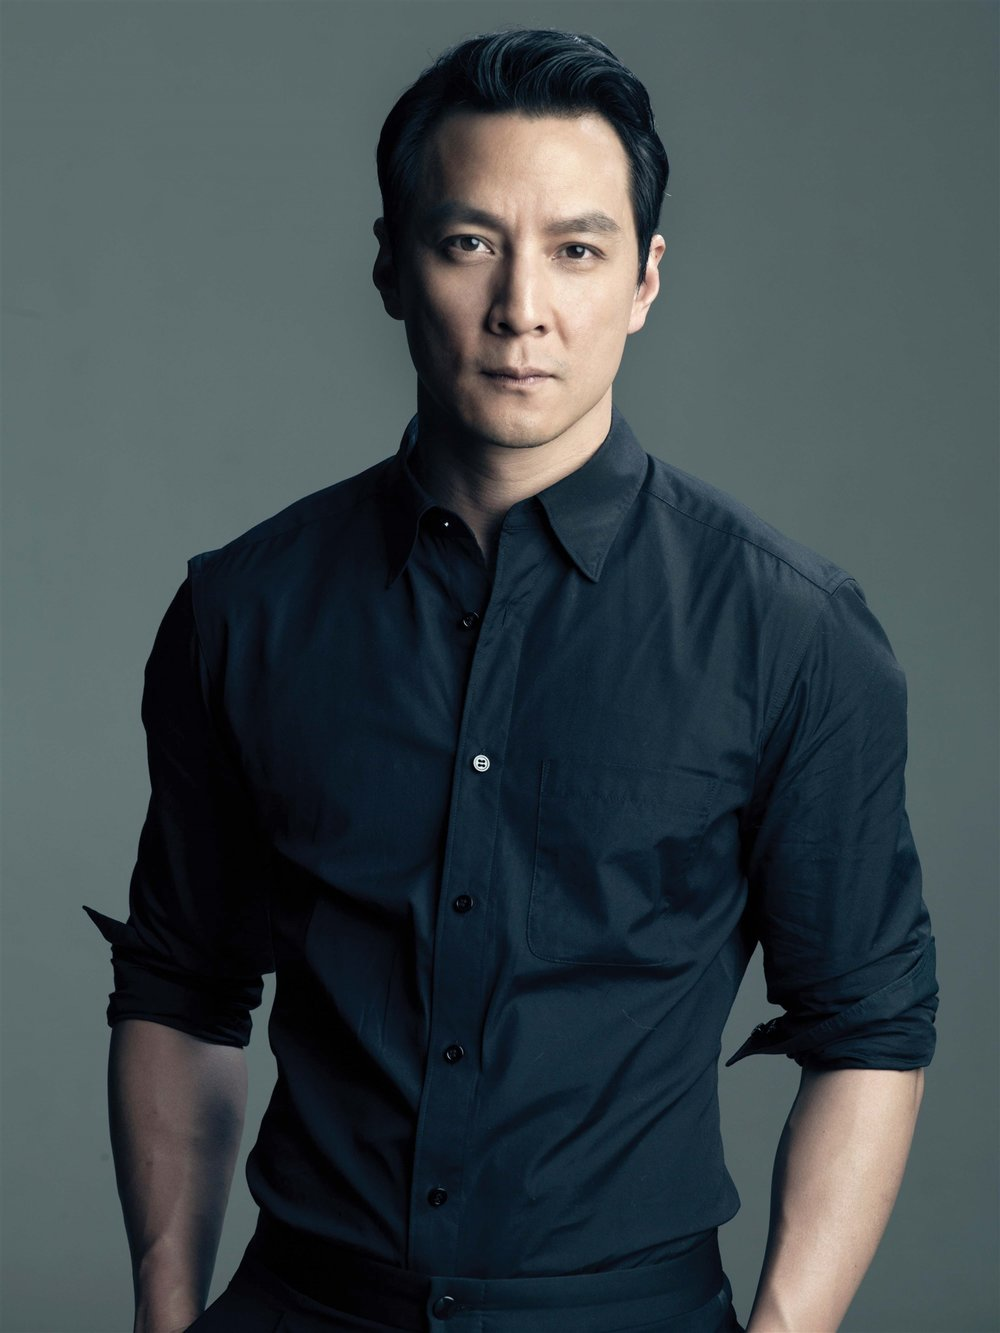 Daniel Wu's acting talents have been well-known in Hong Kong for almost 20 years. Now the rest of the world seems to be taking notice.Photo by Wing Shya